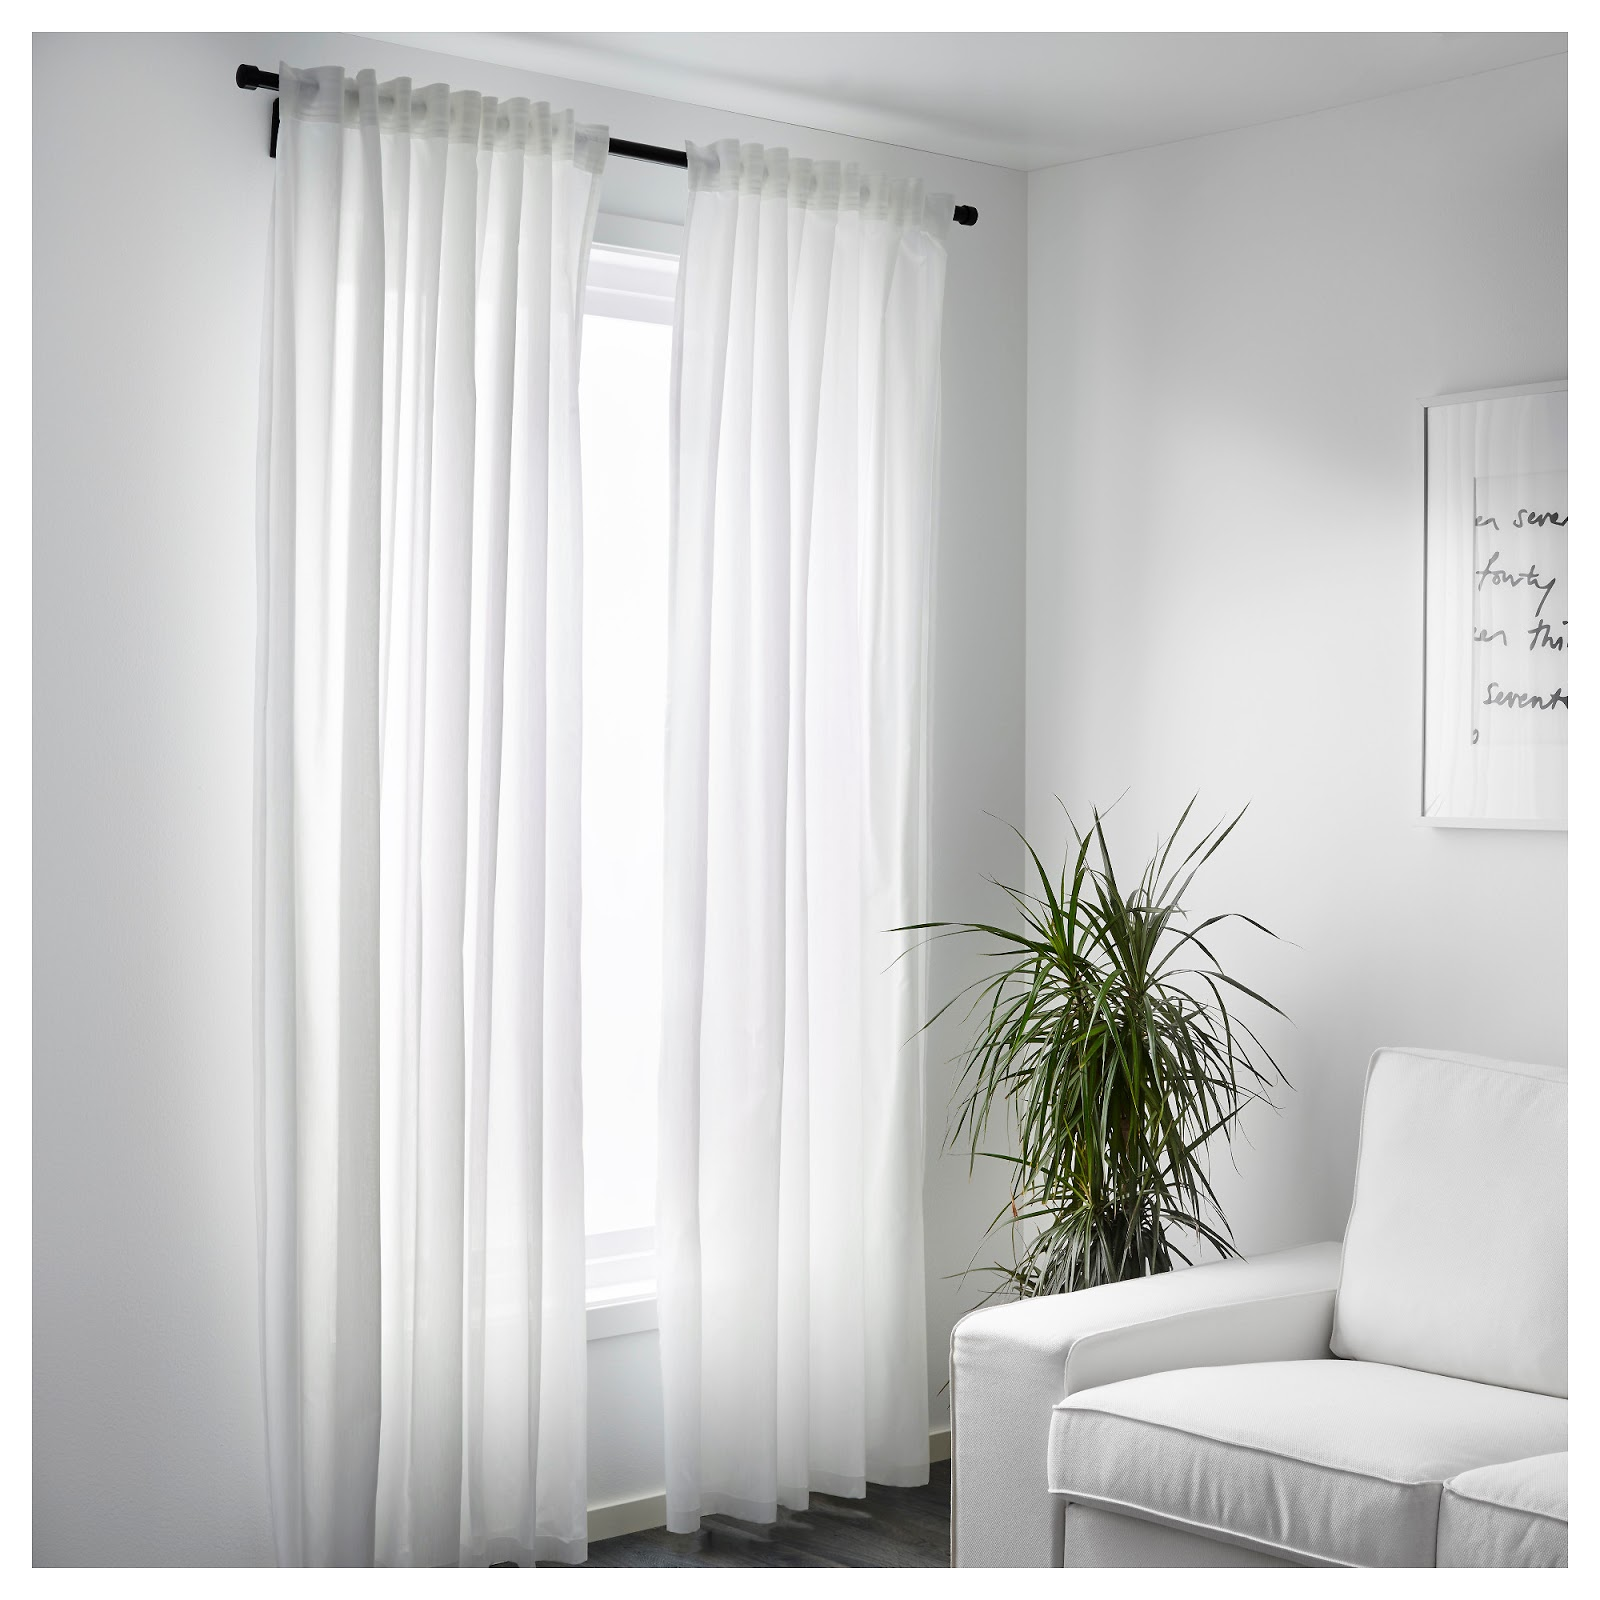 Freezer Curtains Insulated Door Plastic Strip Curtain